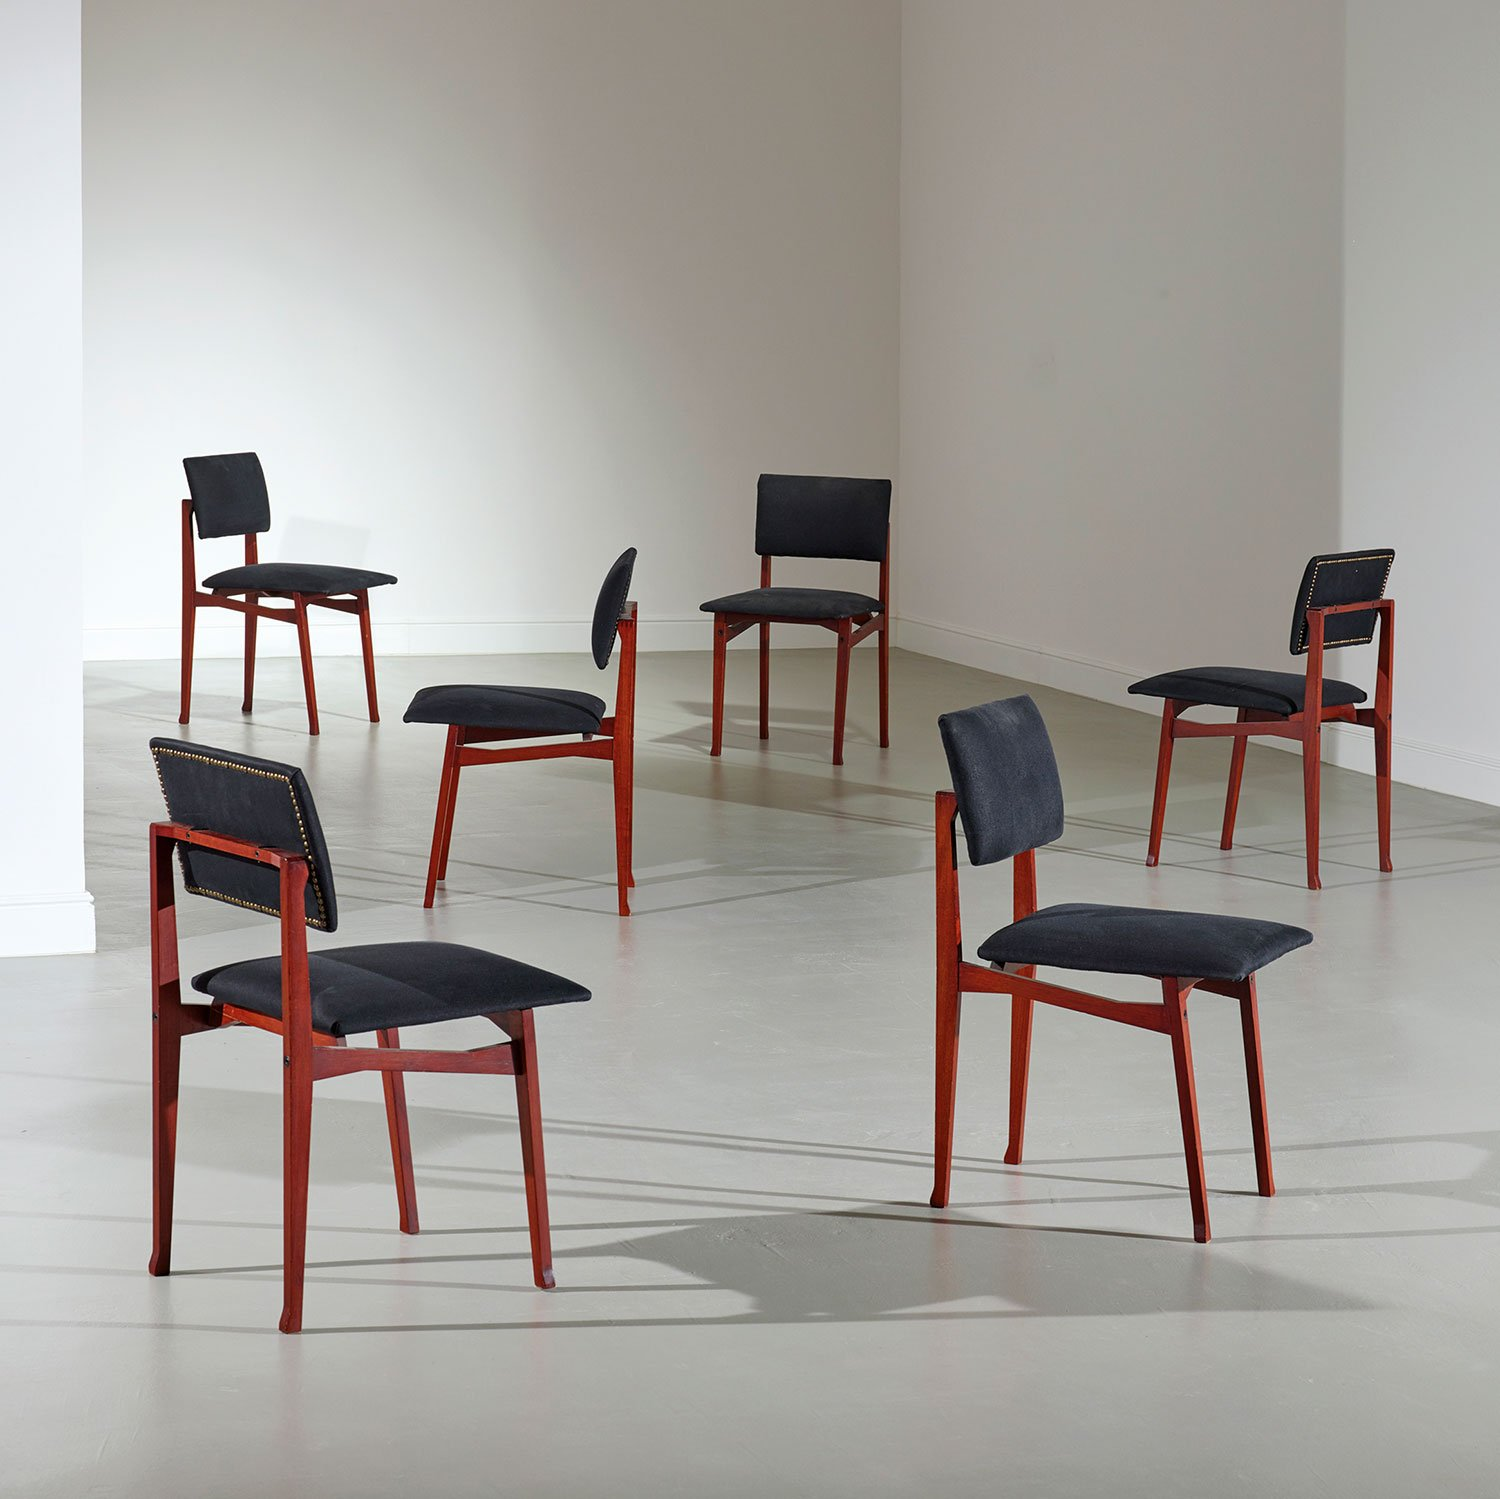 Franco Albini and Franca Helg |                                  Set of 6 chairs mod. SD9 Luisella